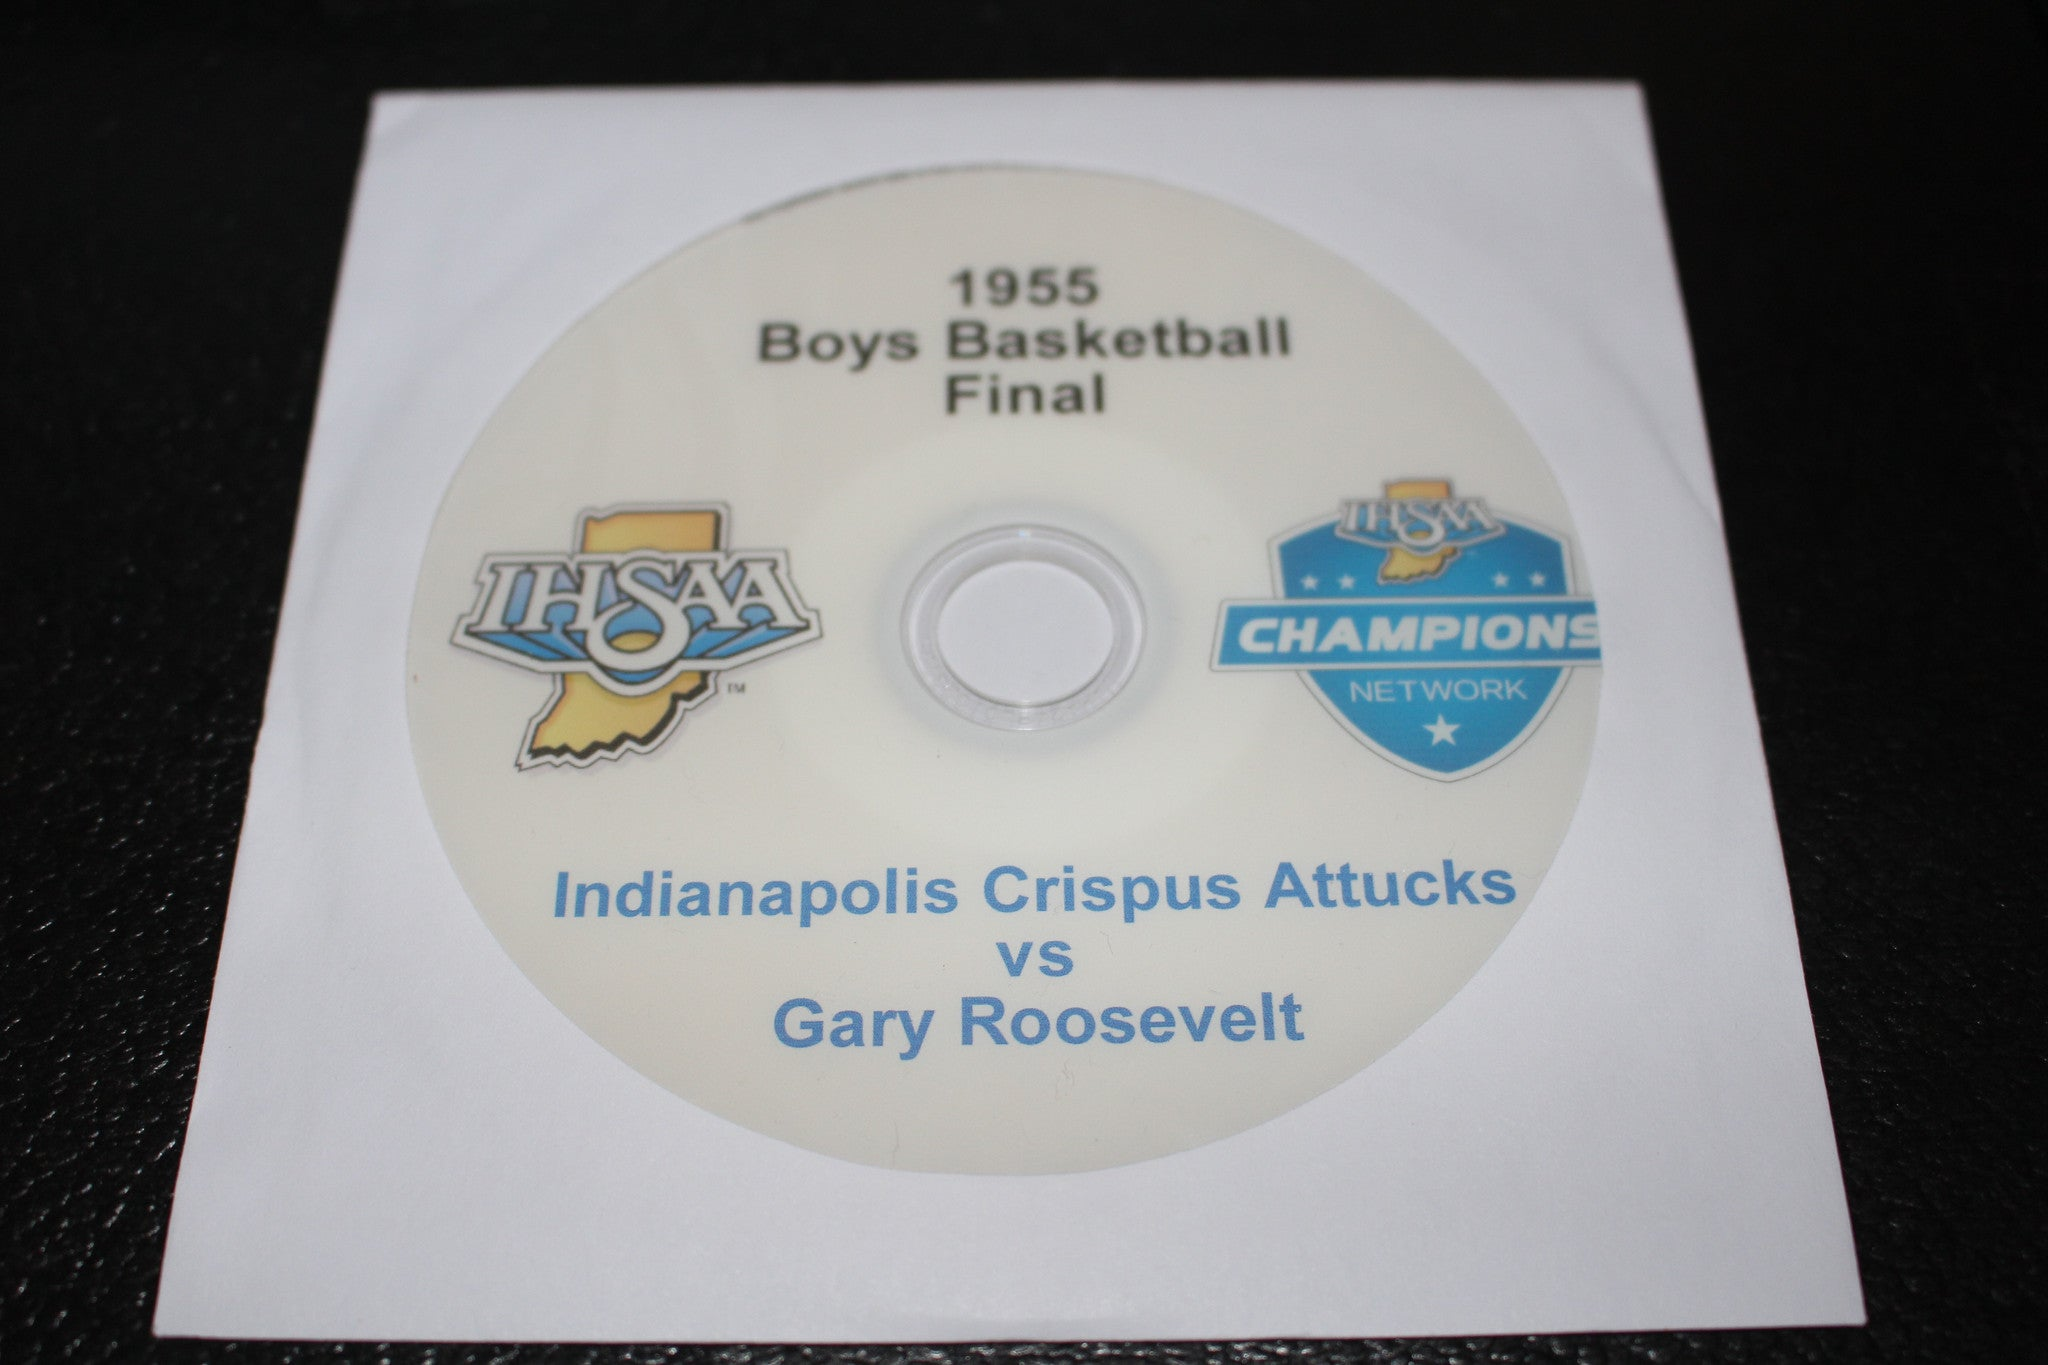 1955 Indiana High School Basketball Final DVD - Vintage Indy Sports